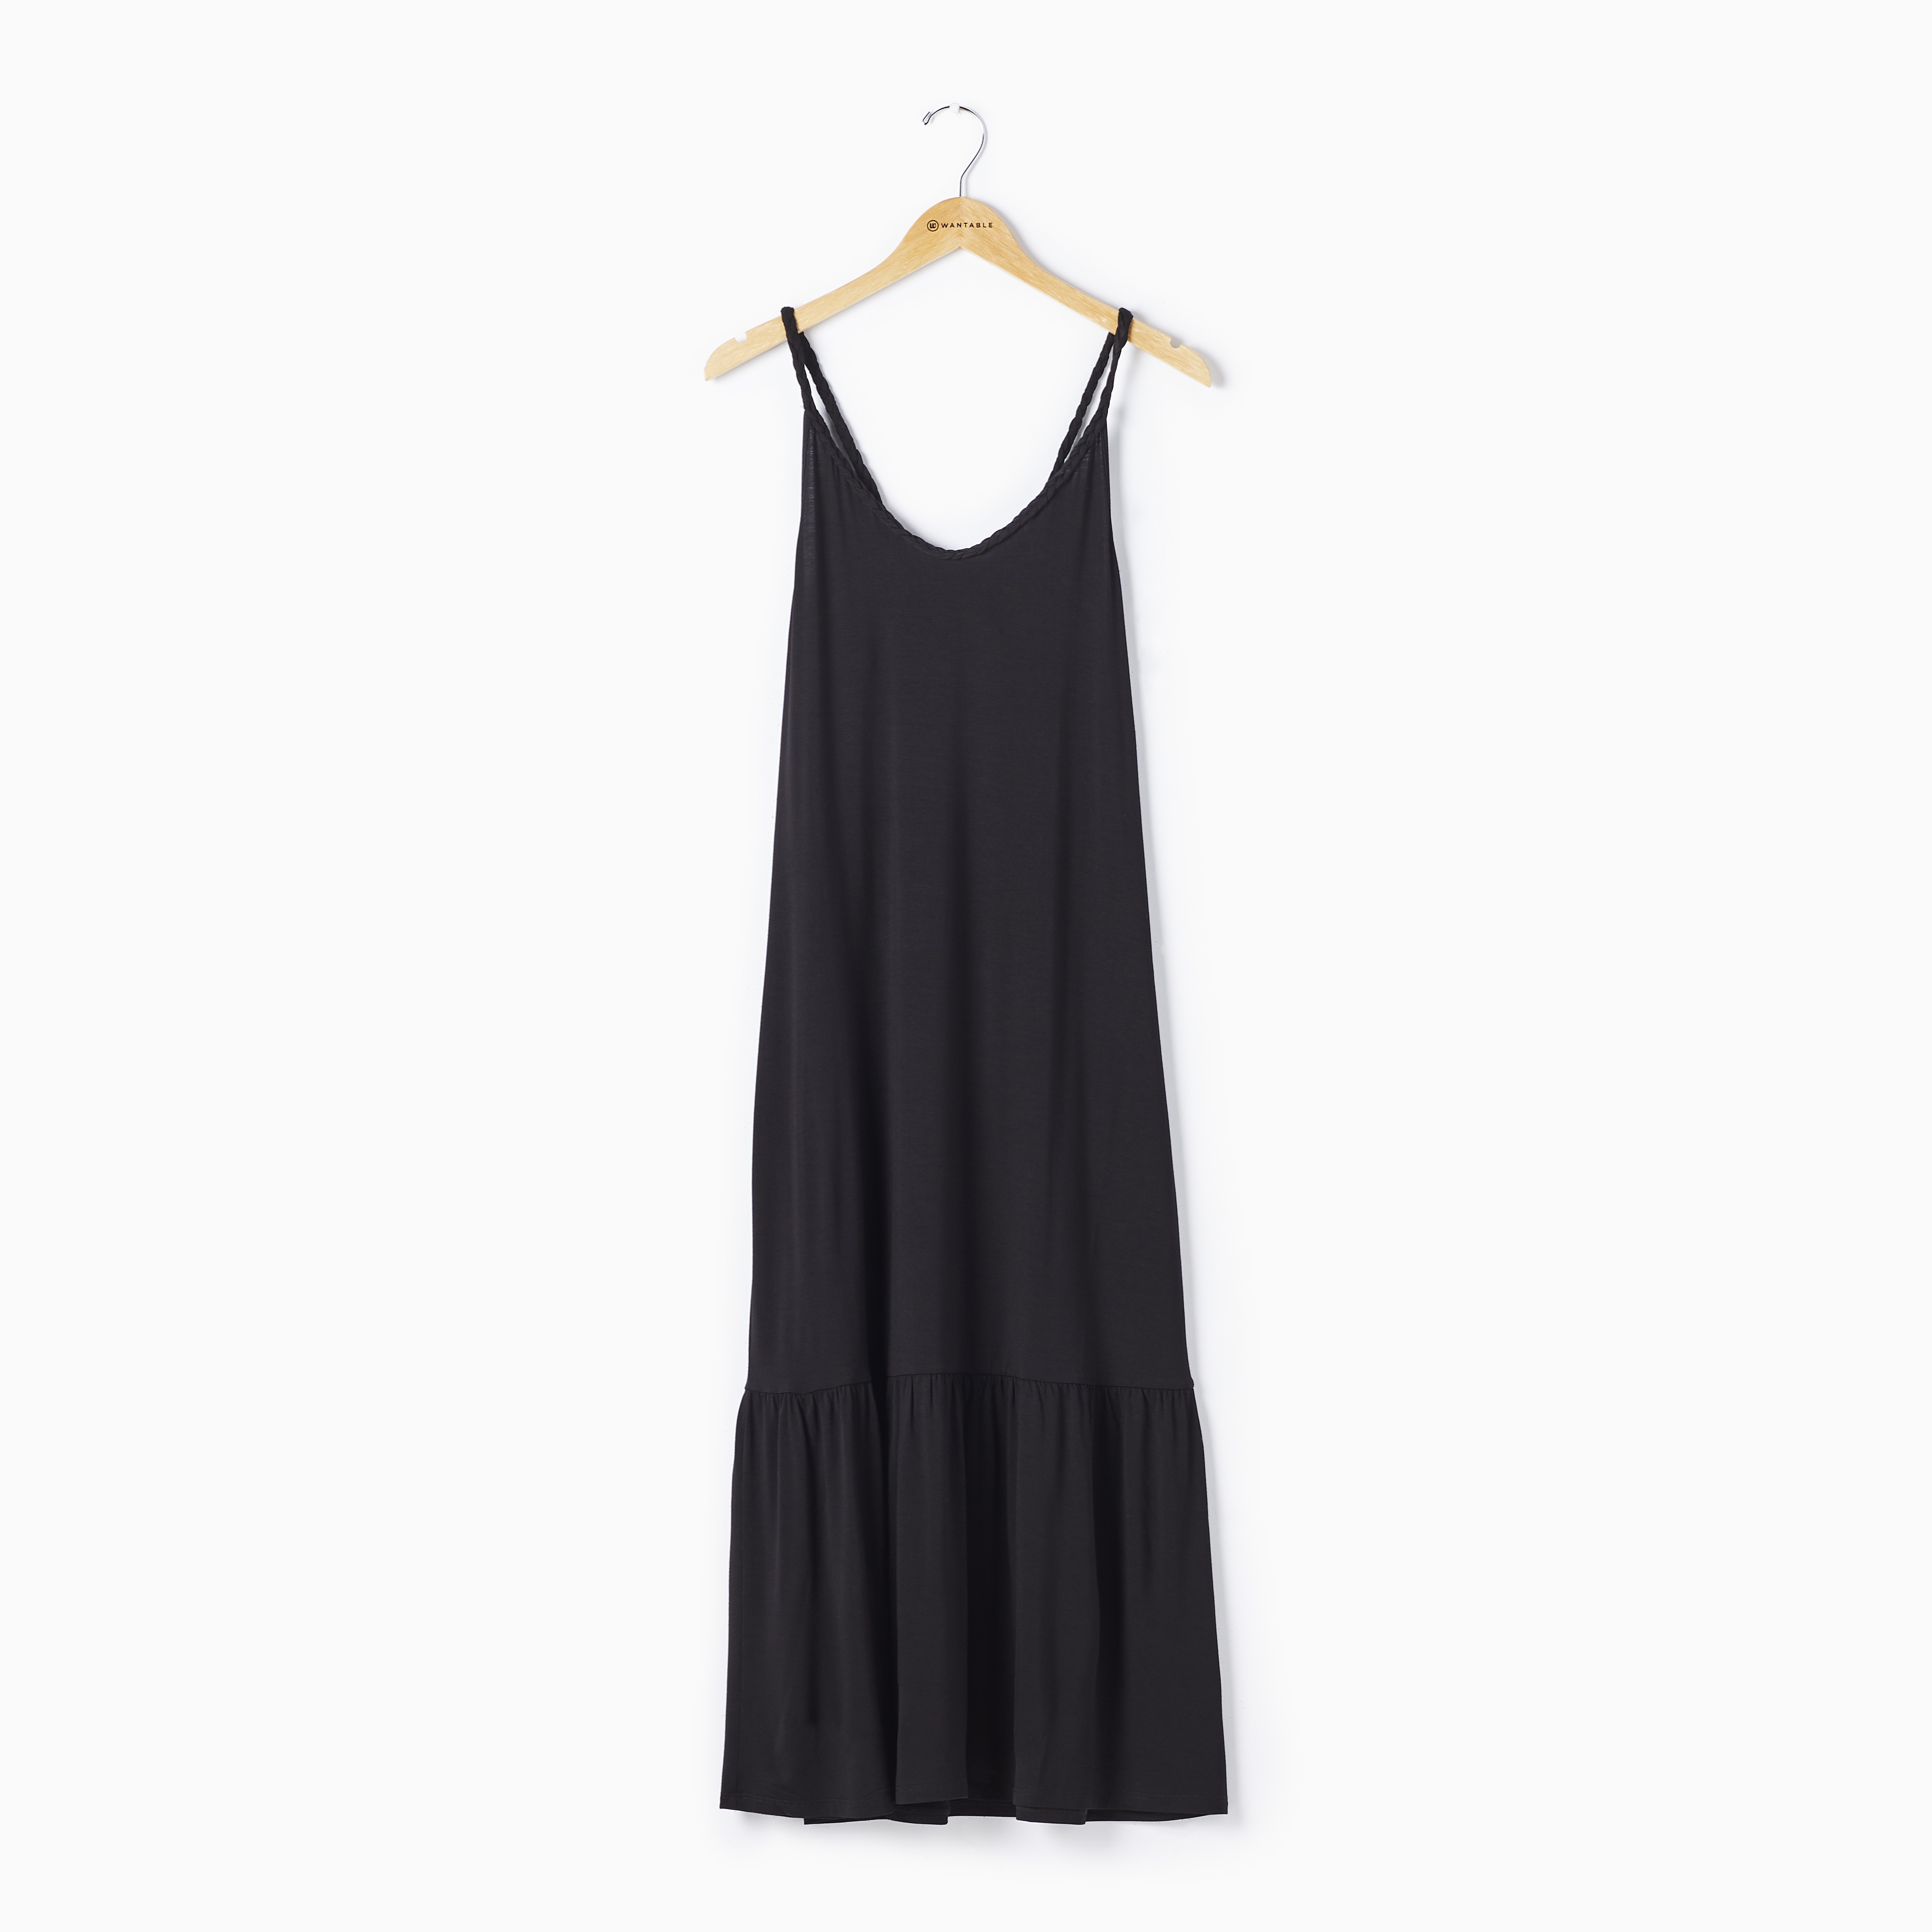 Black Maxi Dress on a Hanger - Casual Summer Dress by Another Love